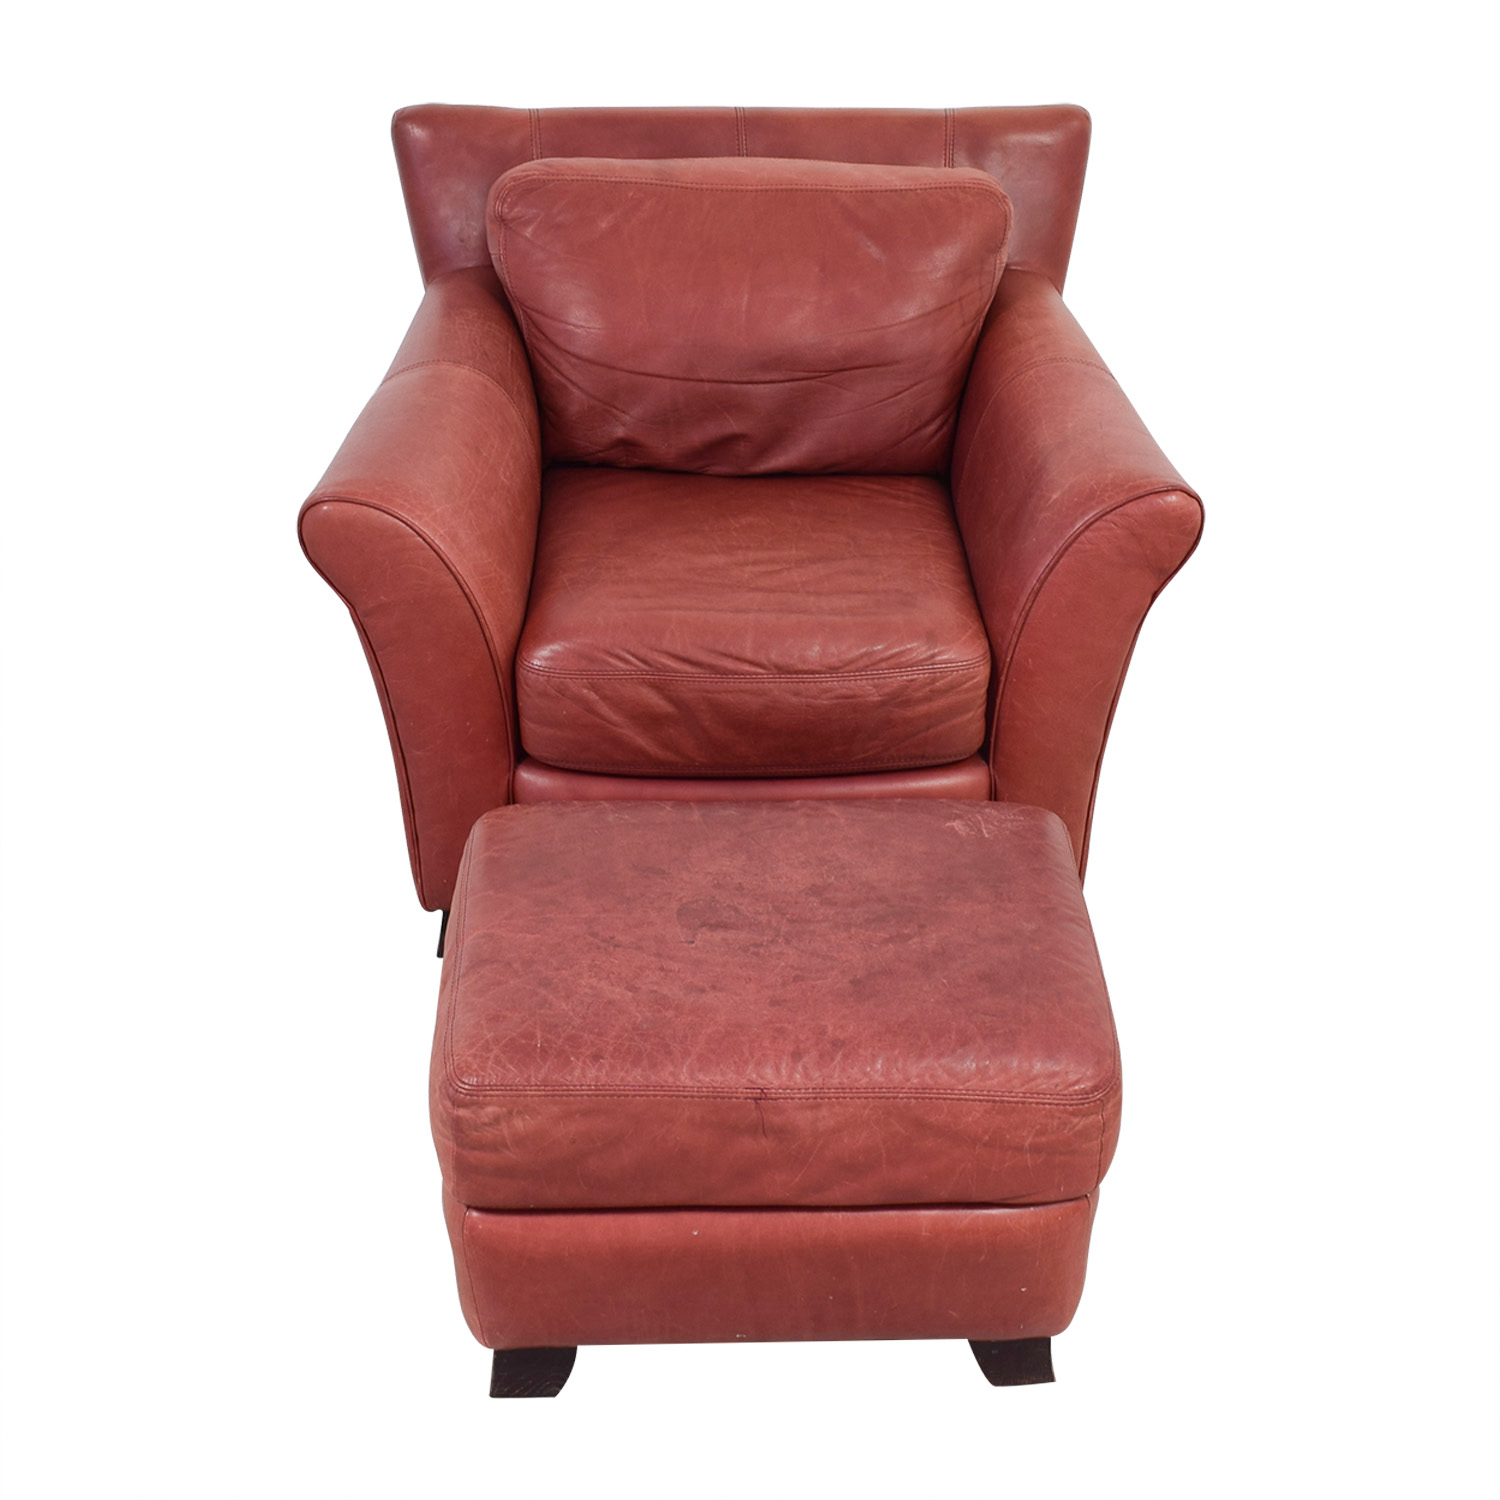 73 Off Palliser Red Leather Chair And Ottoman Chairs